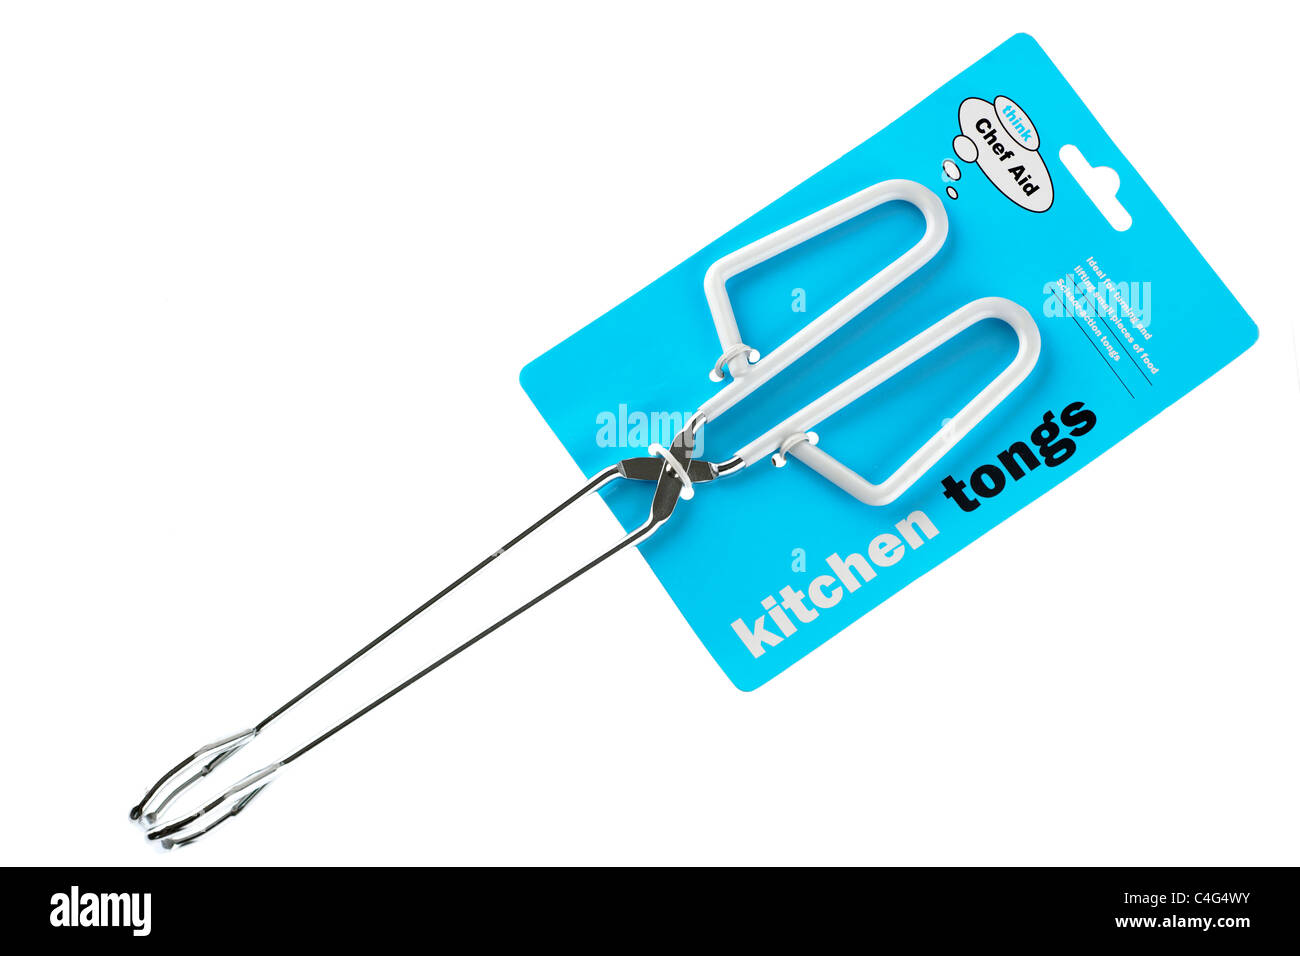 Think Chef aid kitchen tongs - Stock Image